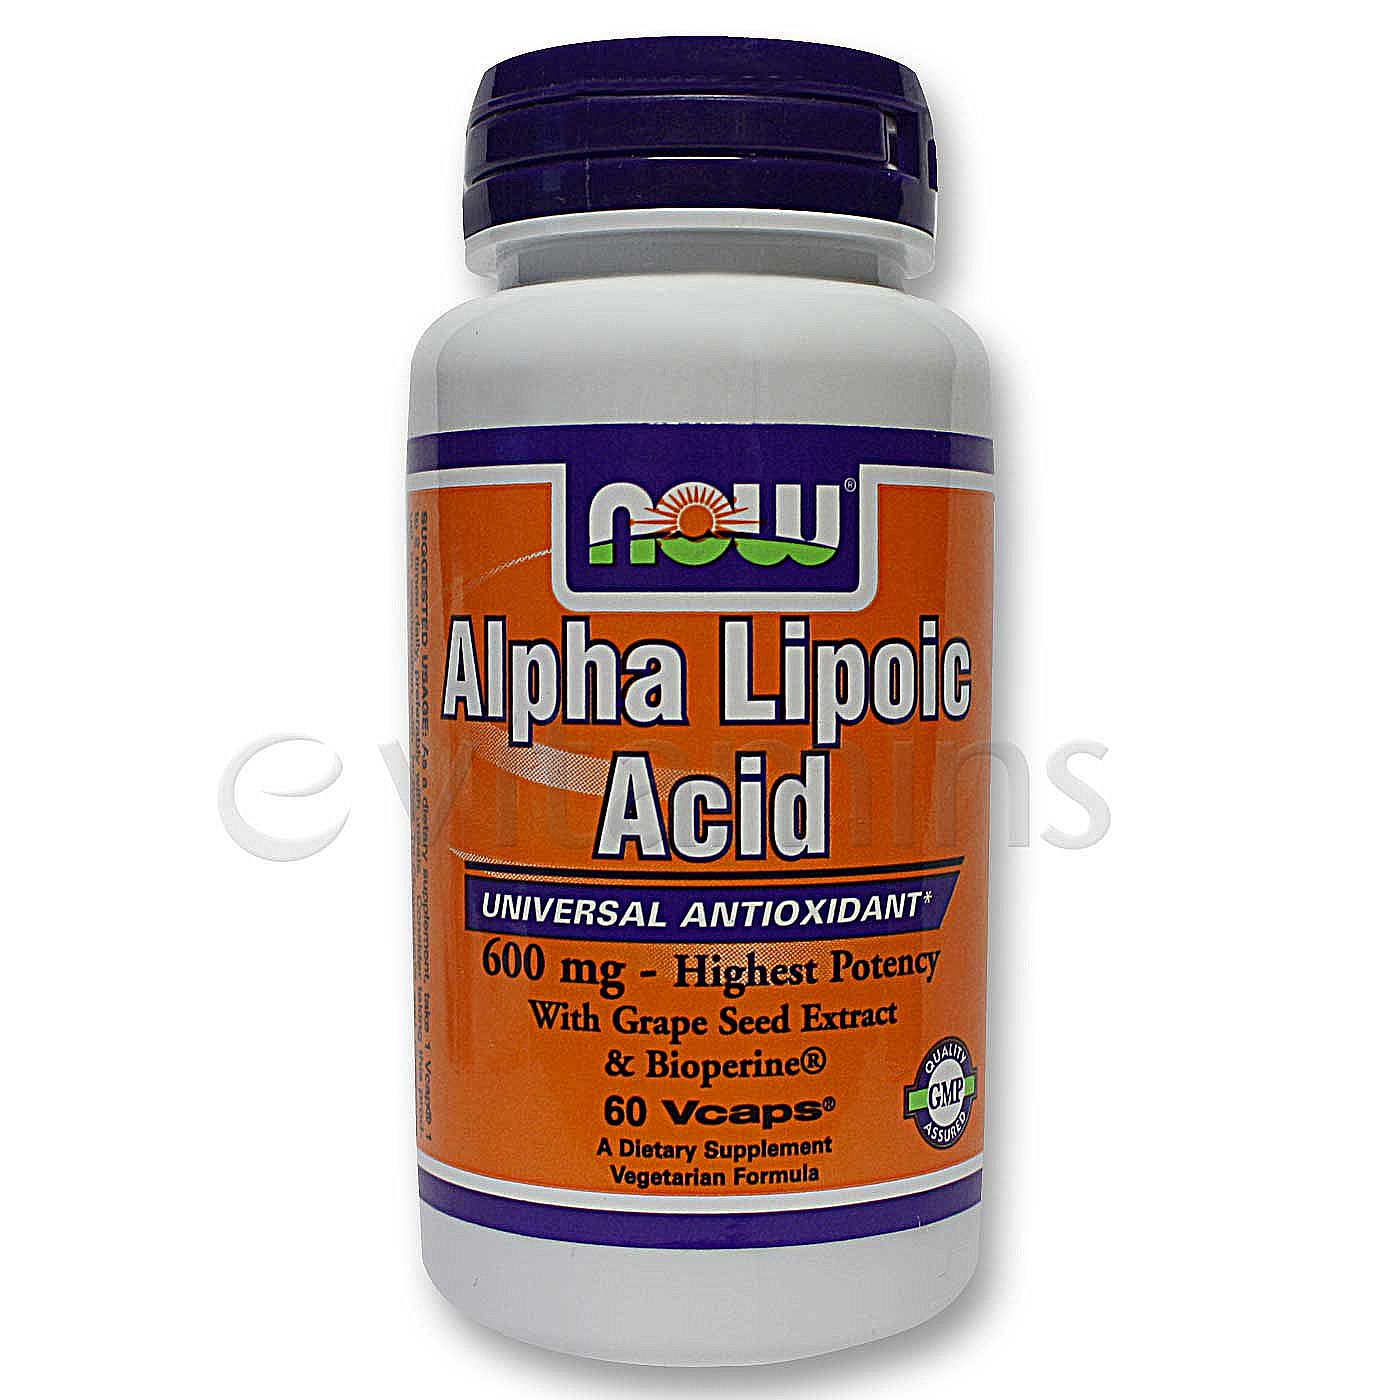 Alpha lipoic acid now